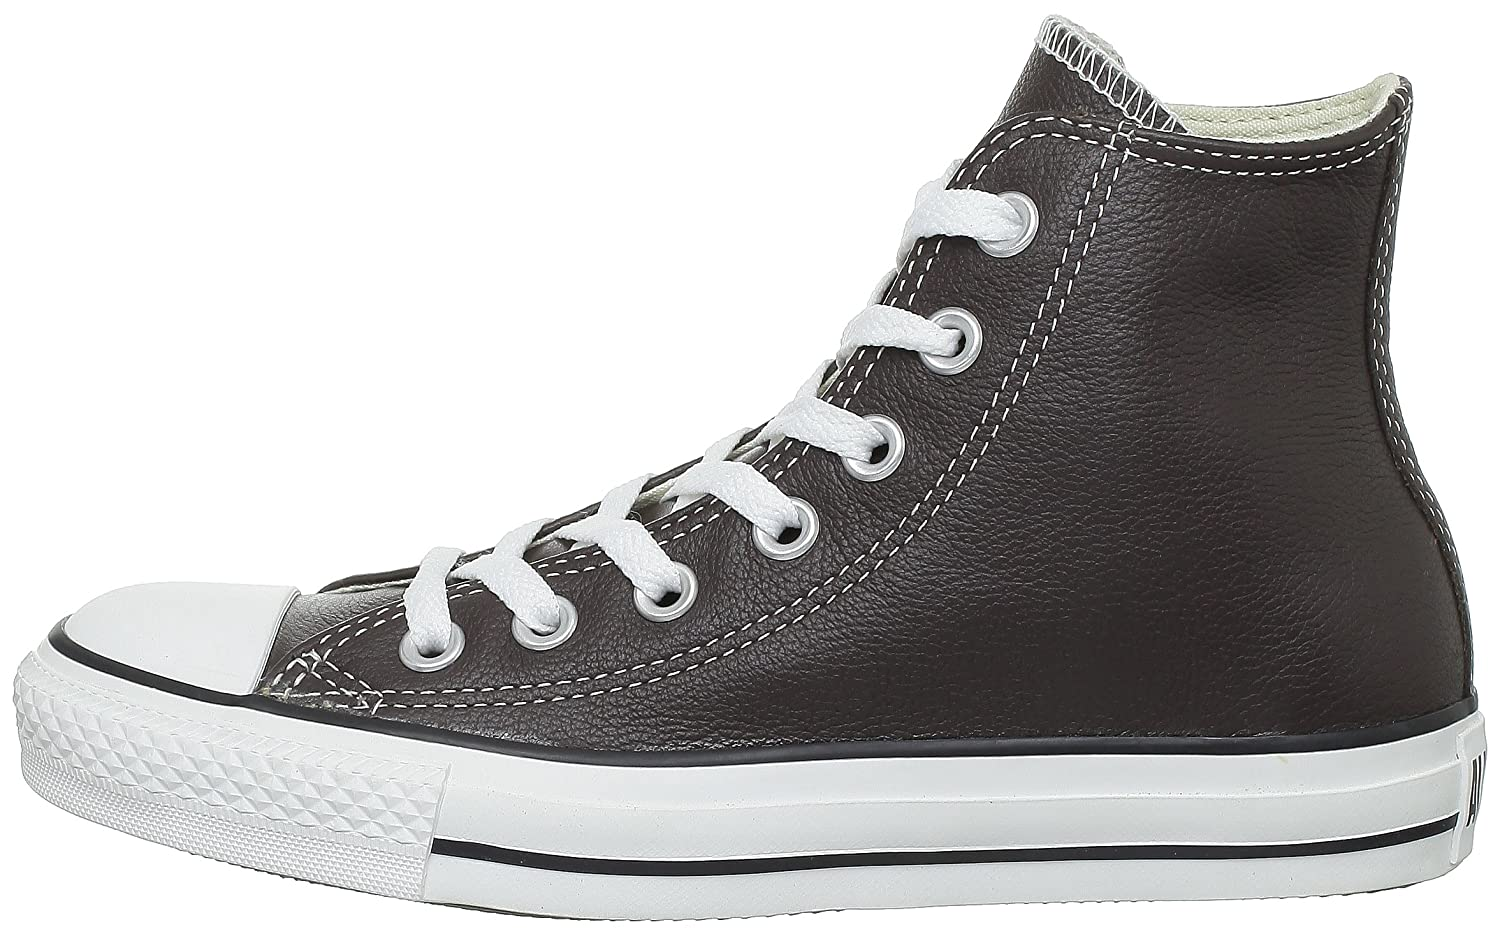 Converse Chuck Taylor All Star Leather High Top Sneaker B006OCAMHE 5.5M B(M) US|Chocolate